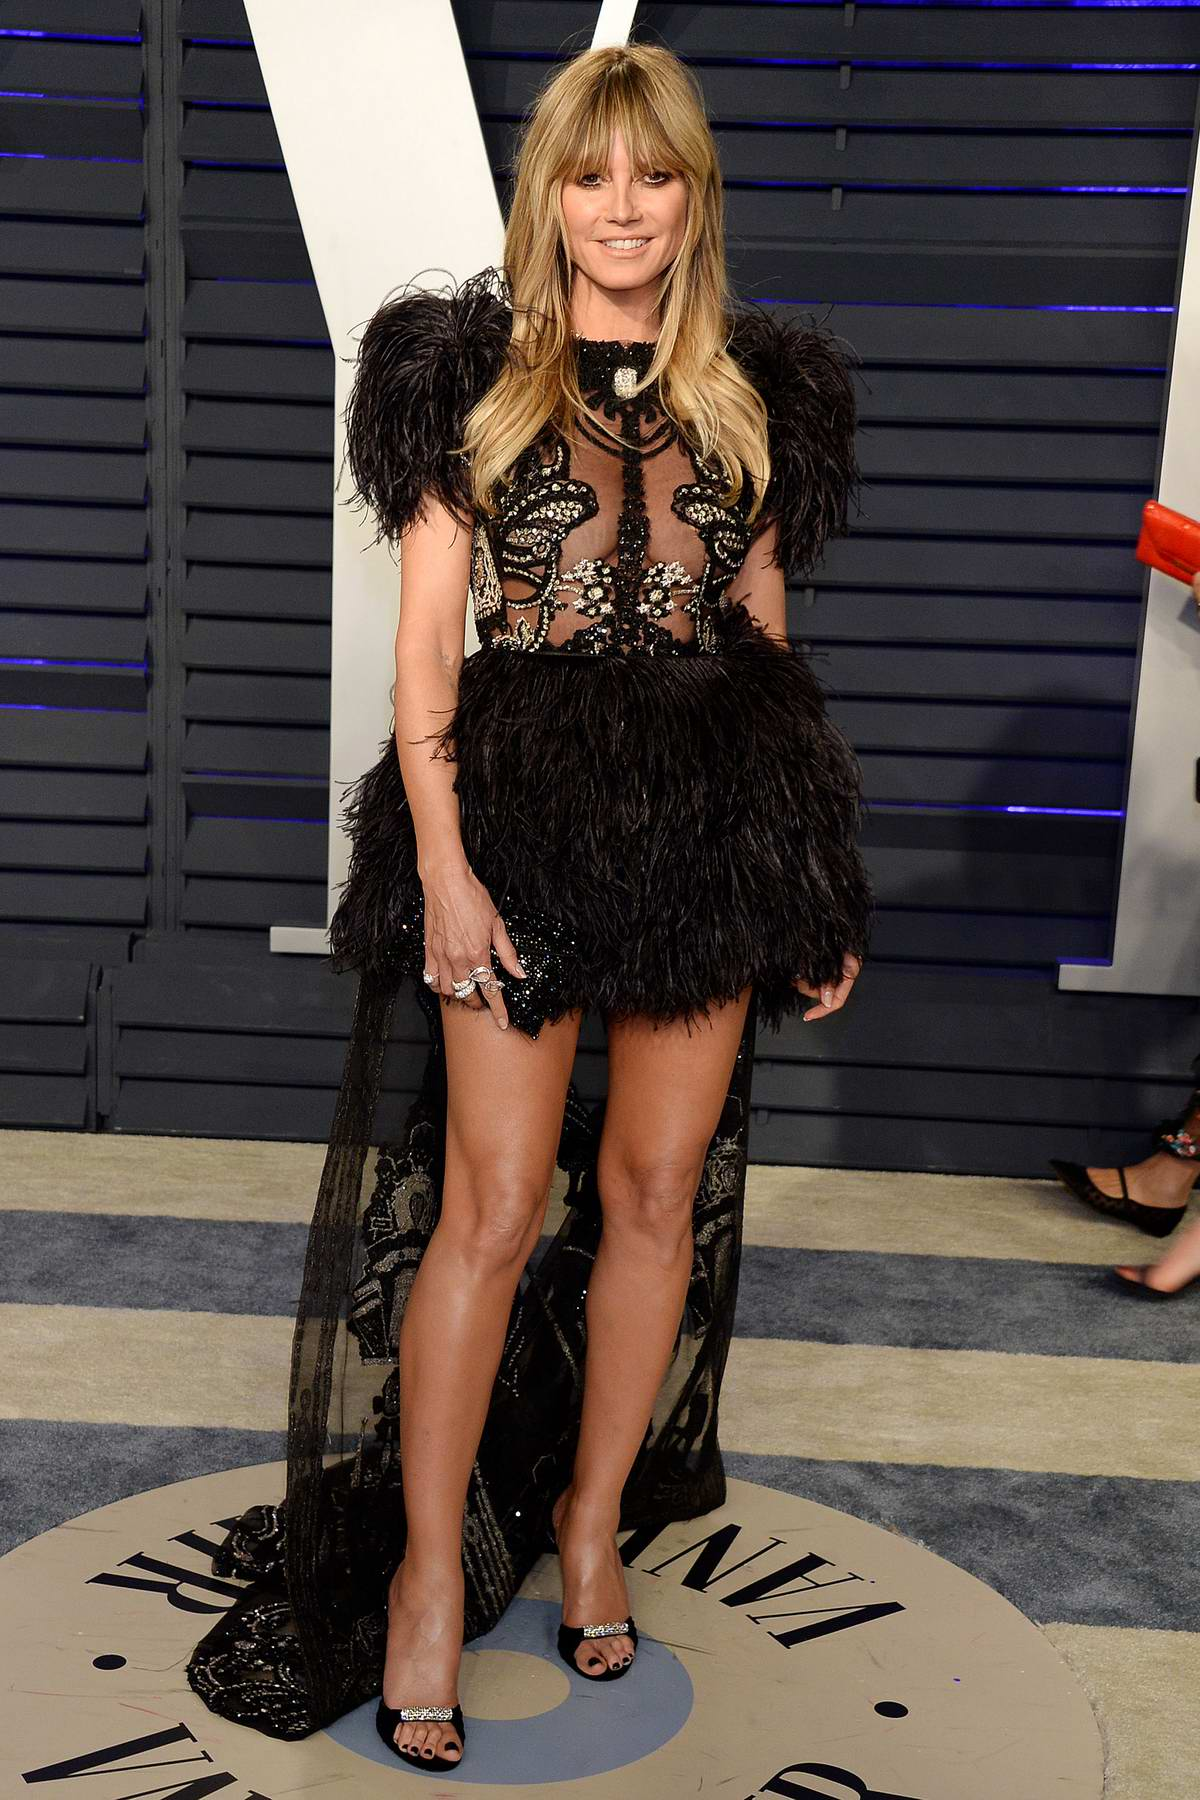 Heidi Klum attends the Vanity Fair Oscar Party at Wallis Annenberg Center for the Performing Arts in Beverly Hills, California